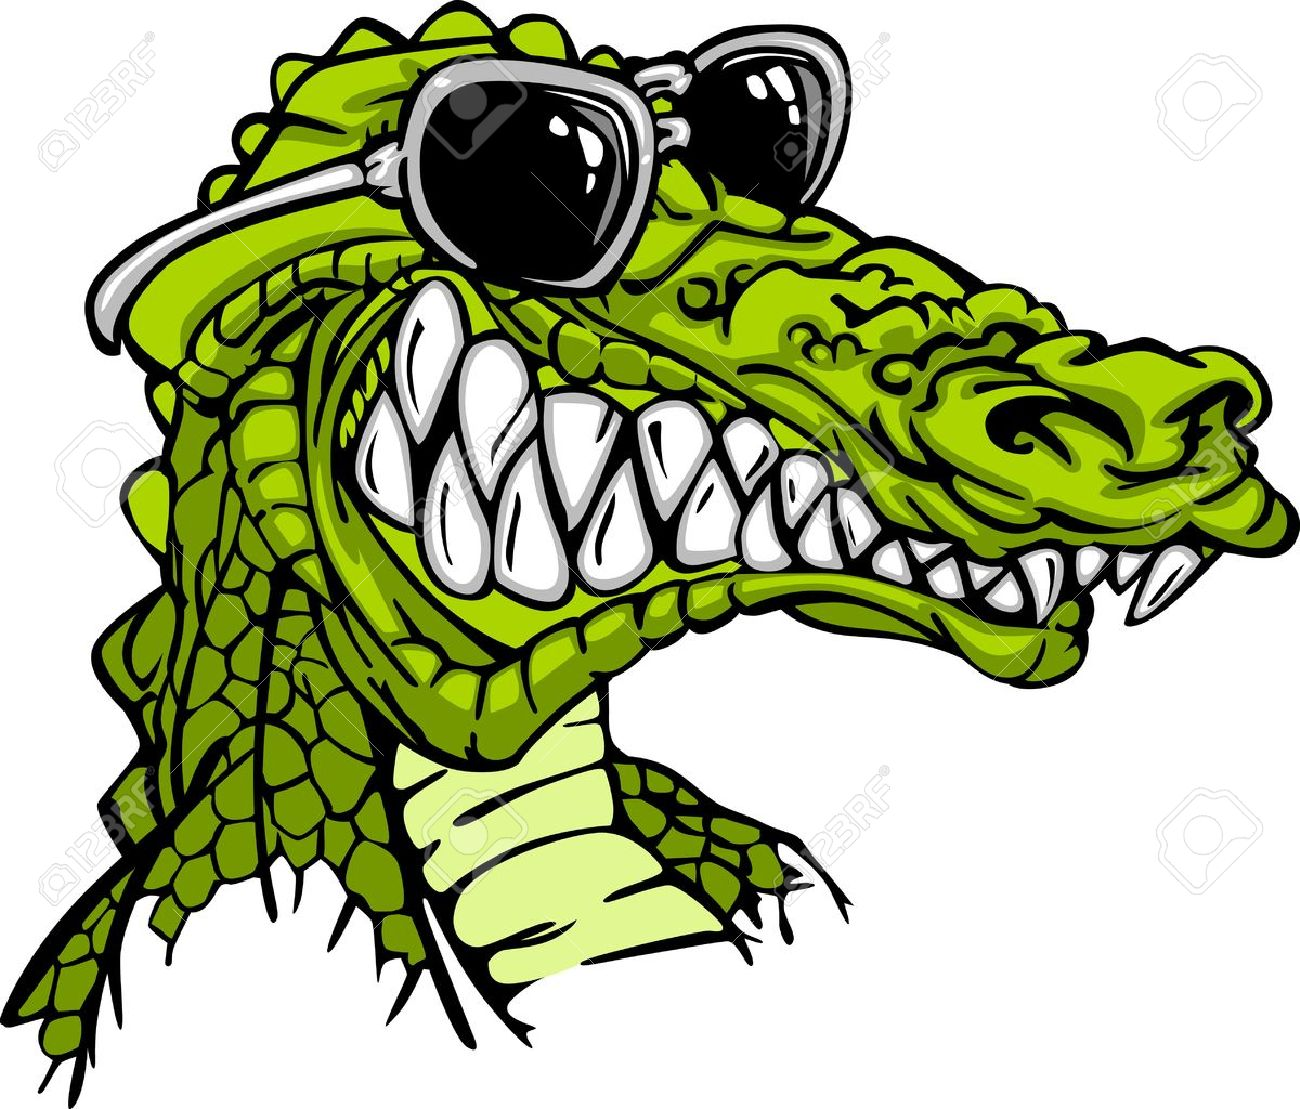 1300x1109 Cartoon Image Of A Crocodile Or Alligator Wearing Sunglasses